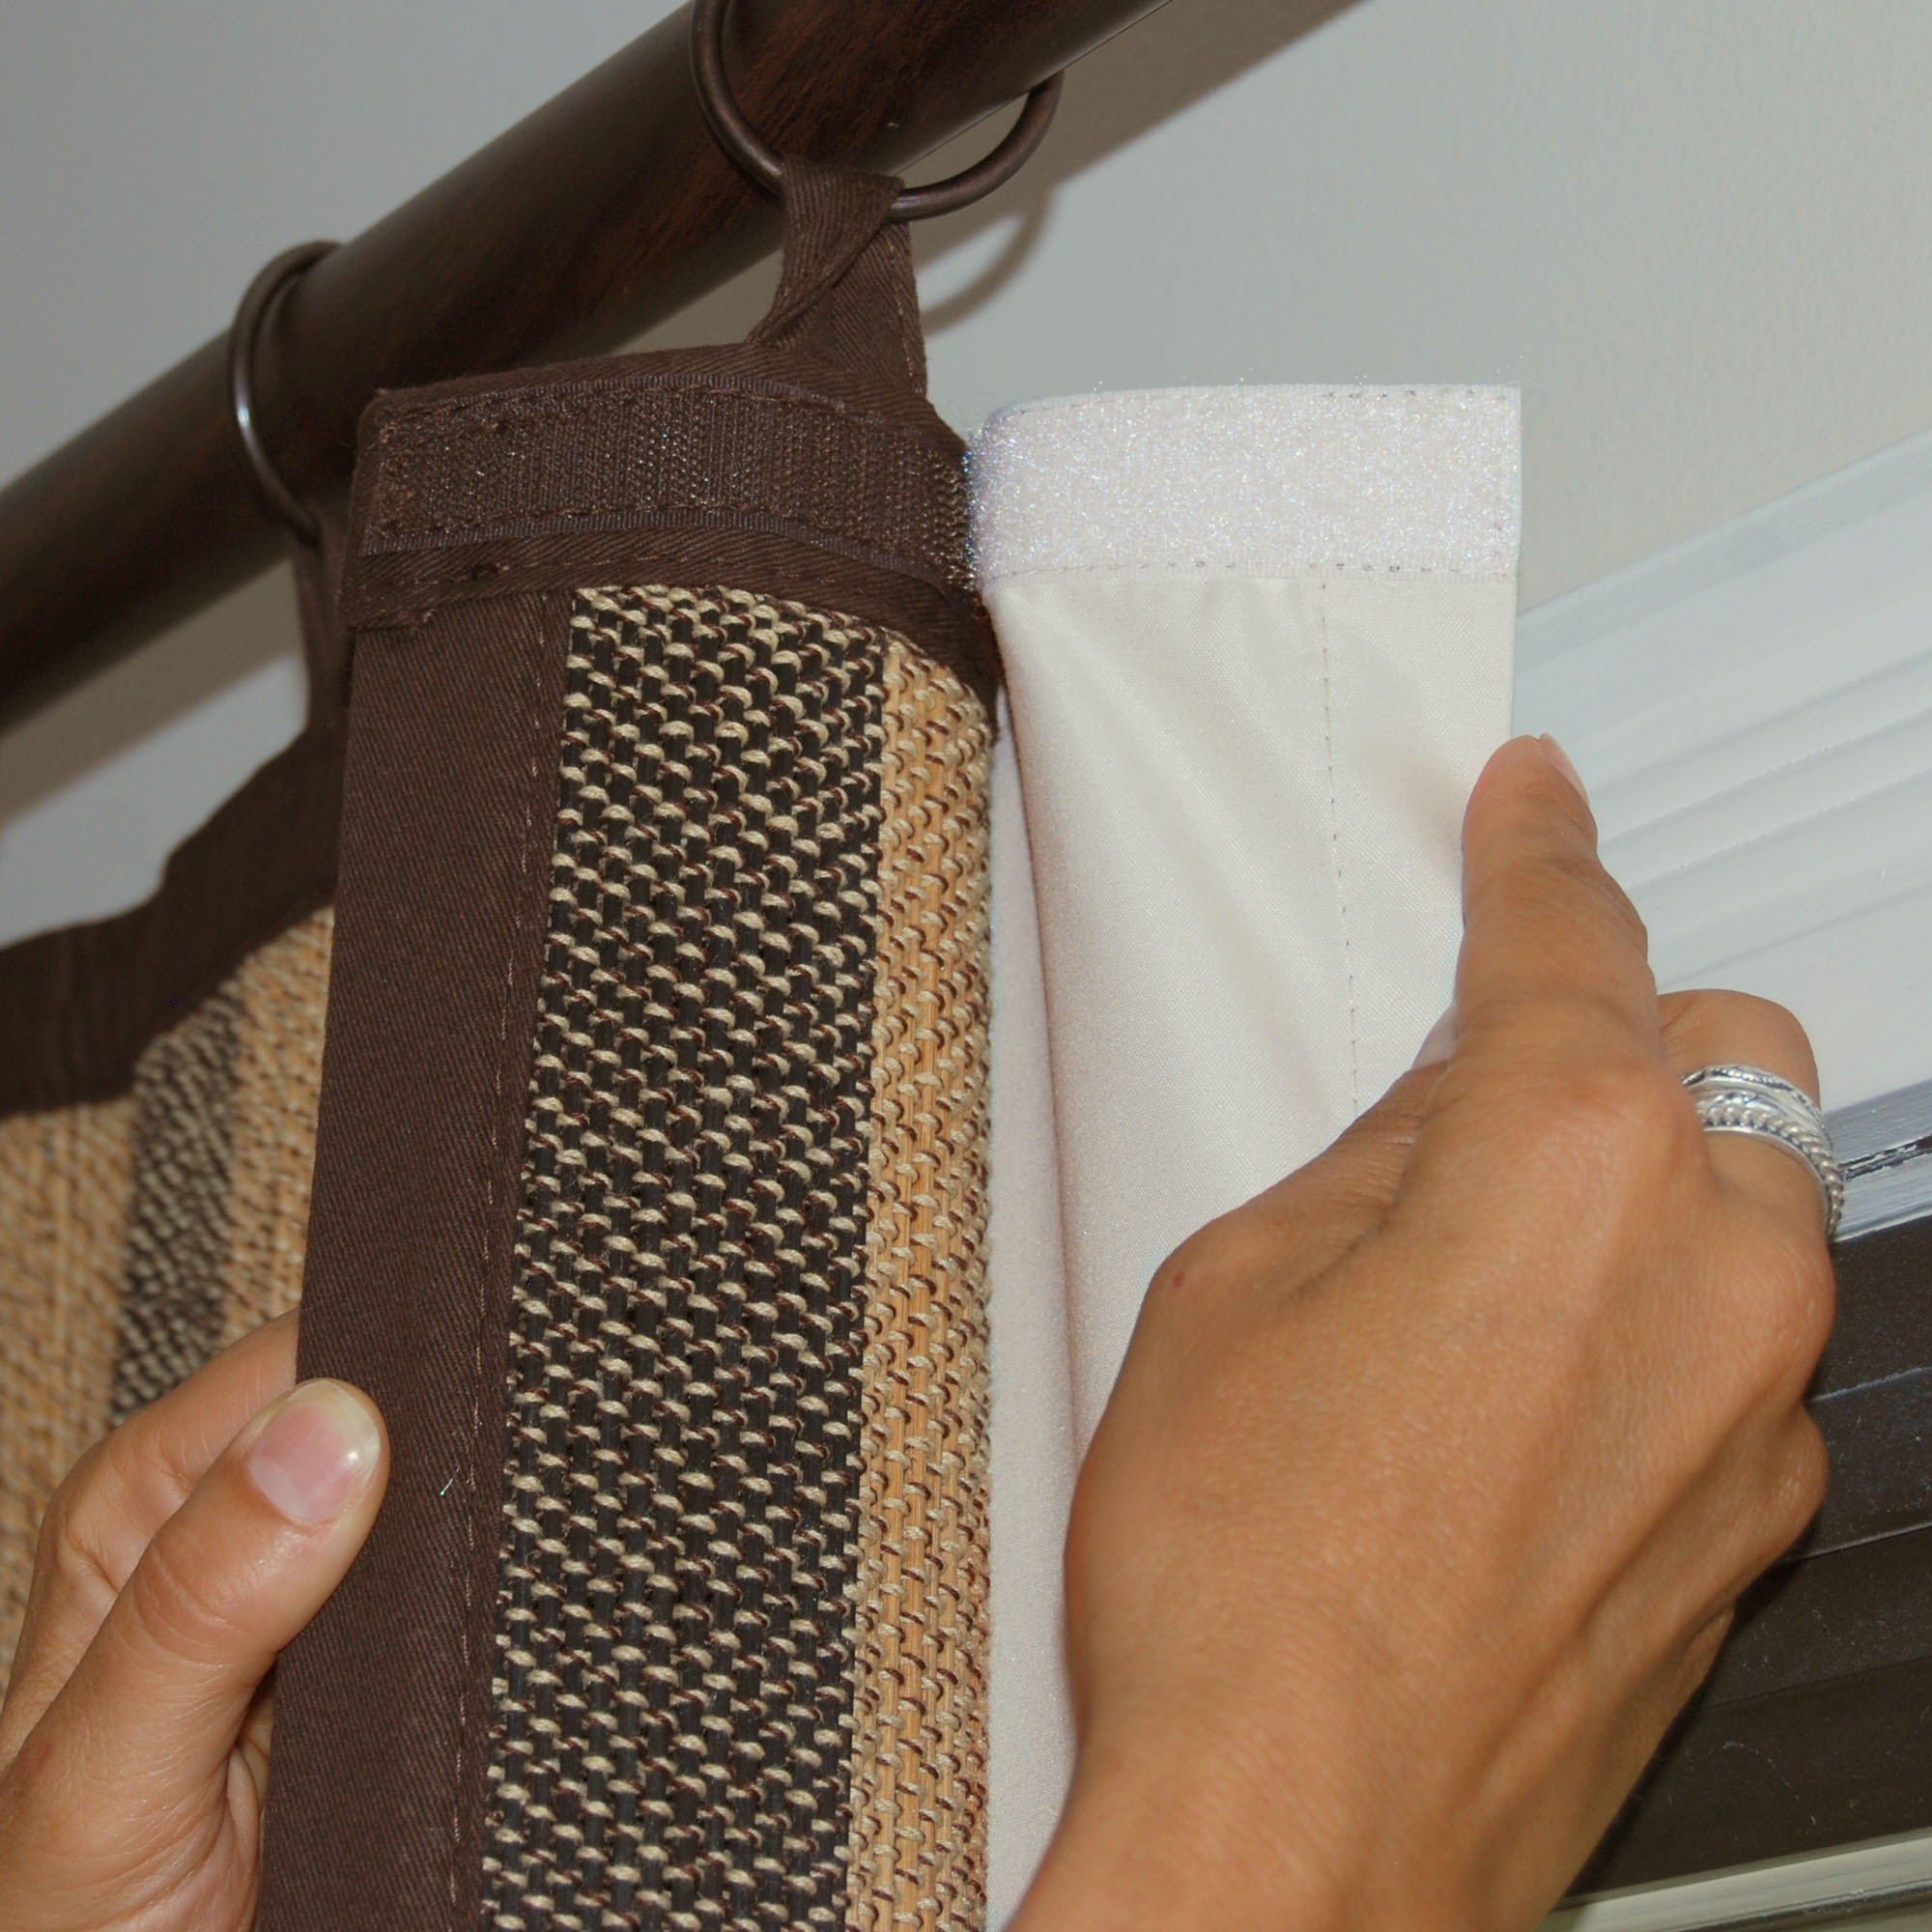 Insulating Blackout Curtain Panel Liner Blackout Curtains Within Blackout Lining Fabric For Curtains (Image 9 of 15)